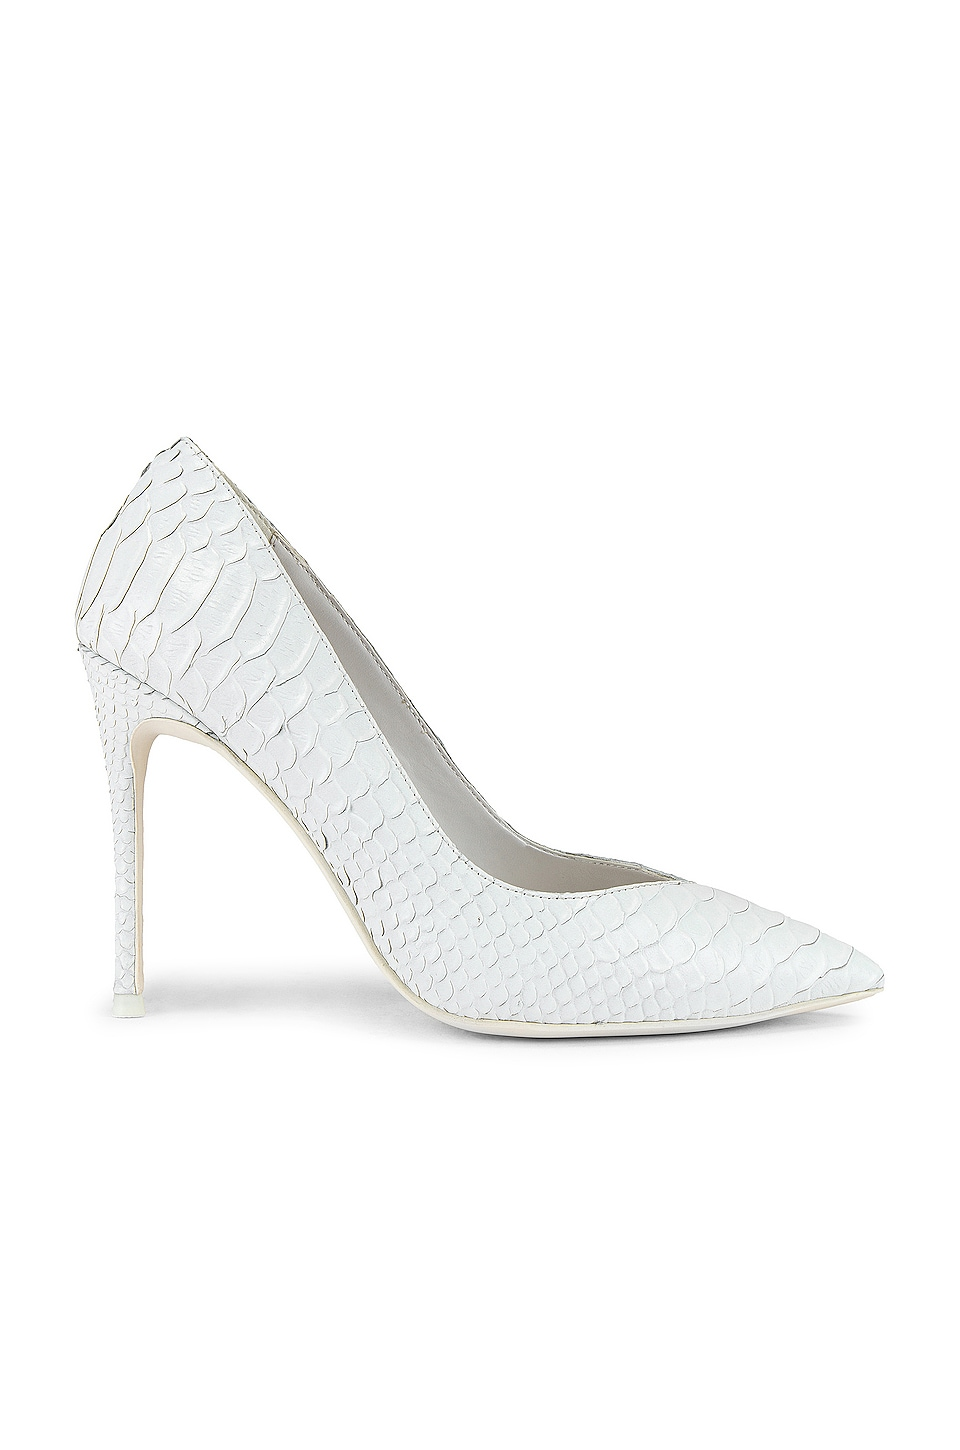 Jeffrey Campbell Lure Heel in White Matte Snake